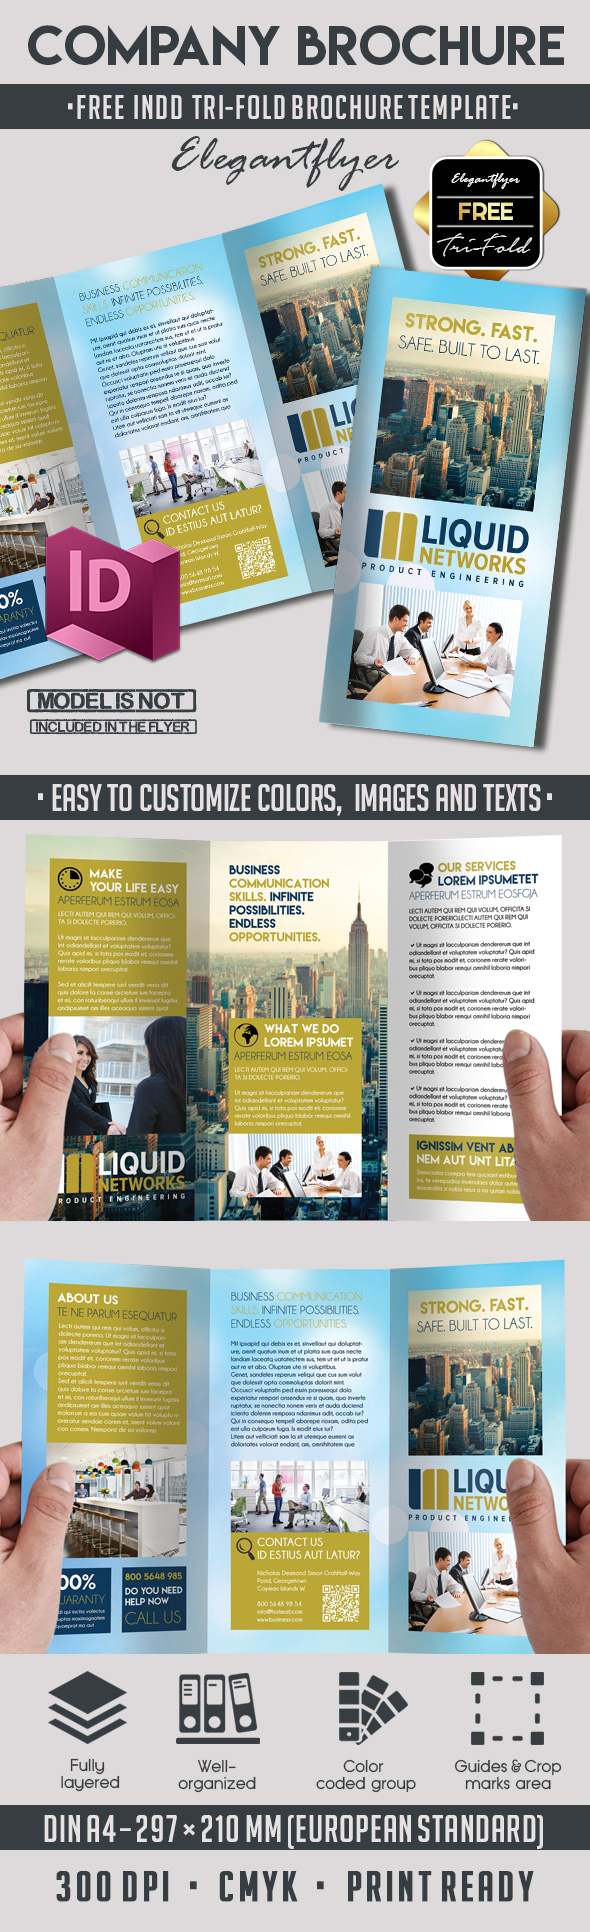 5 powerful free adobe indesign brochures templates by for Adobe indesign brochure templates